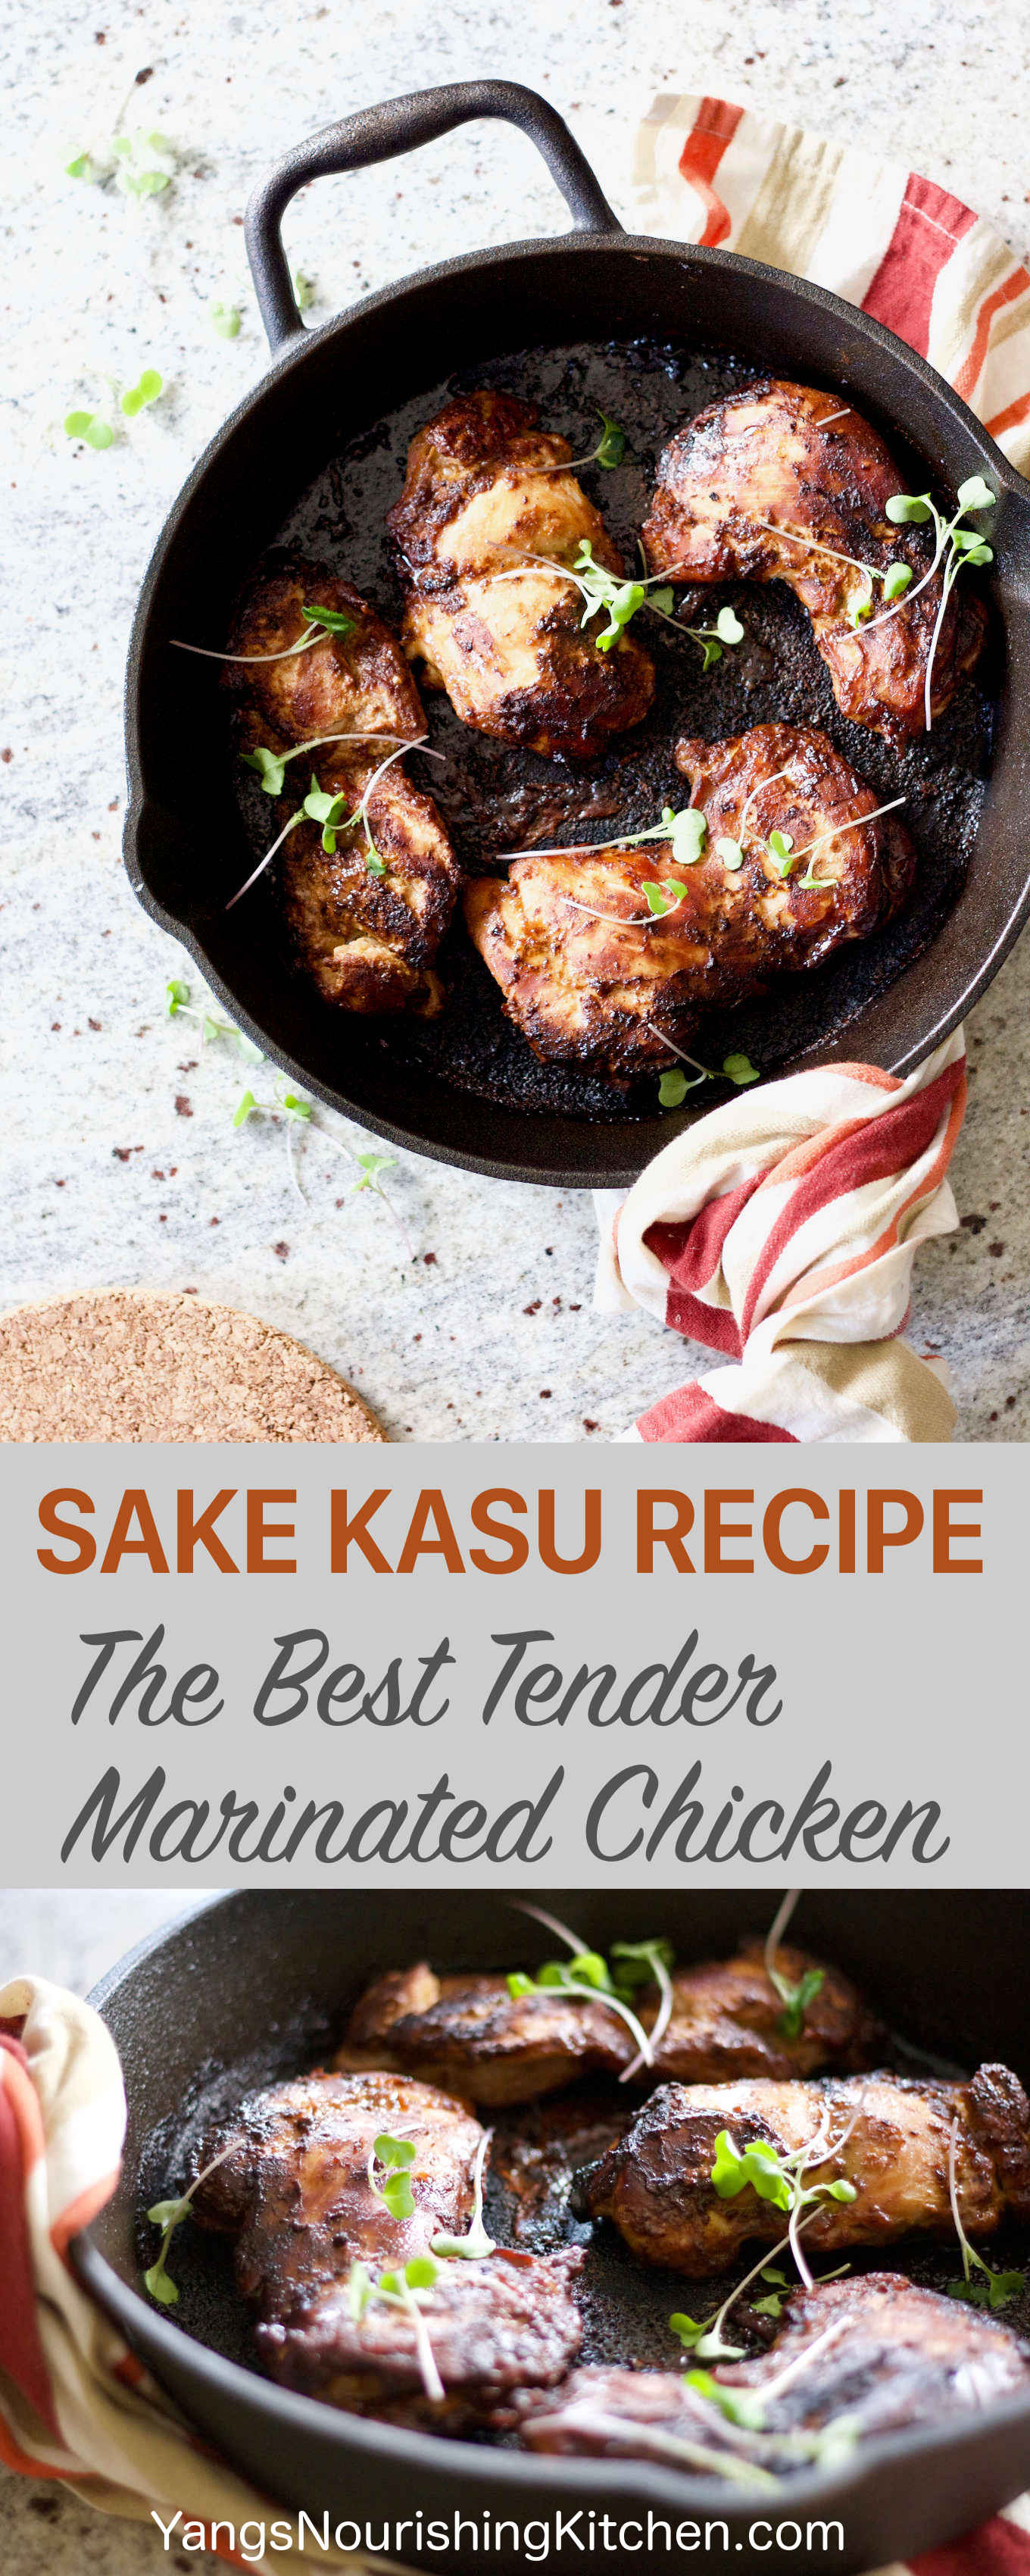 Sake Kasu Recipe: this sake kasu marinade is great on chicken, as well as other meats and fish to bring out big flavours while acting as a tenderizer. Sake kasu, a traditional ingredient, has been regaining recognization in recent years in modern cooking. Sake kasu is appreciated for its nutritional values by the health enthusiasts, as well as praised for its rich umami flavour by the gourmet chefs. Meet this new ingredient that has the best of both worlds - nutrition and flavour.